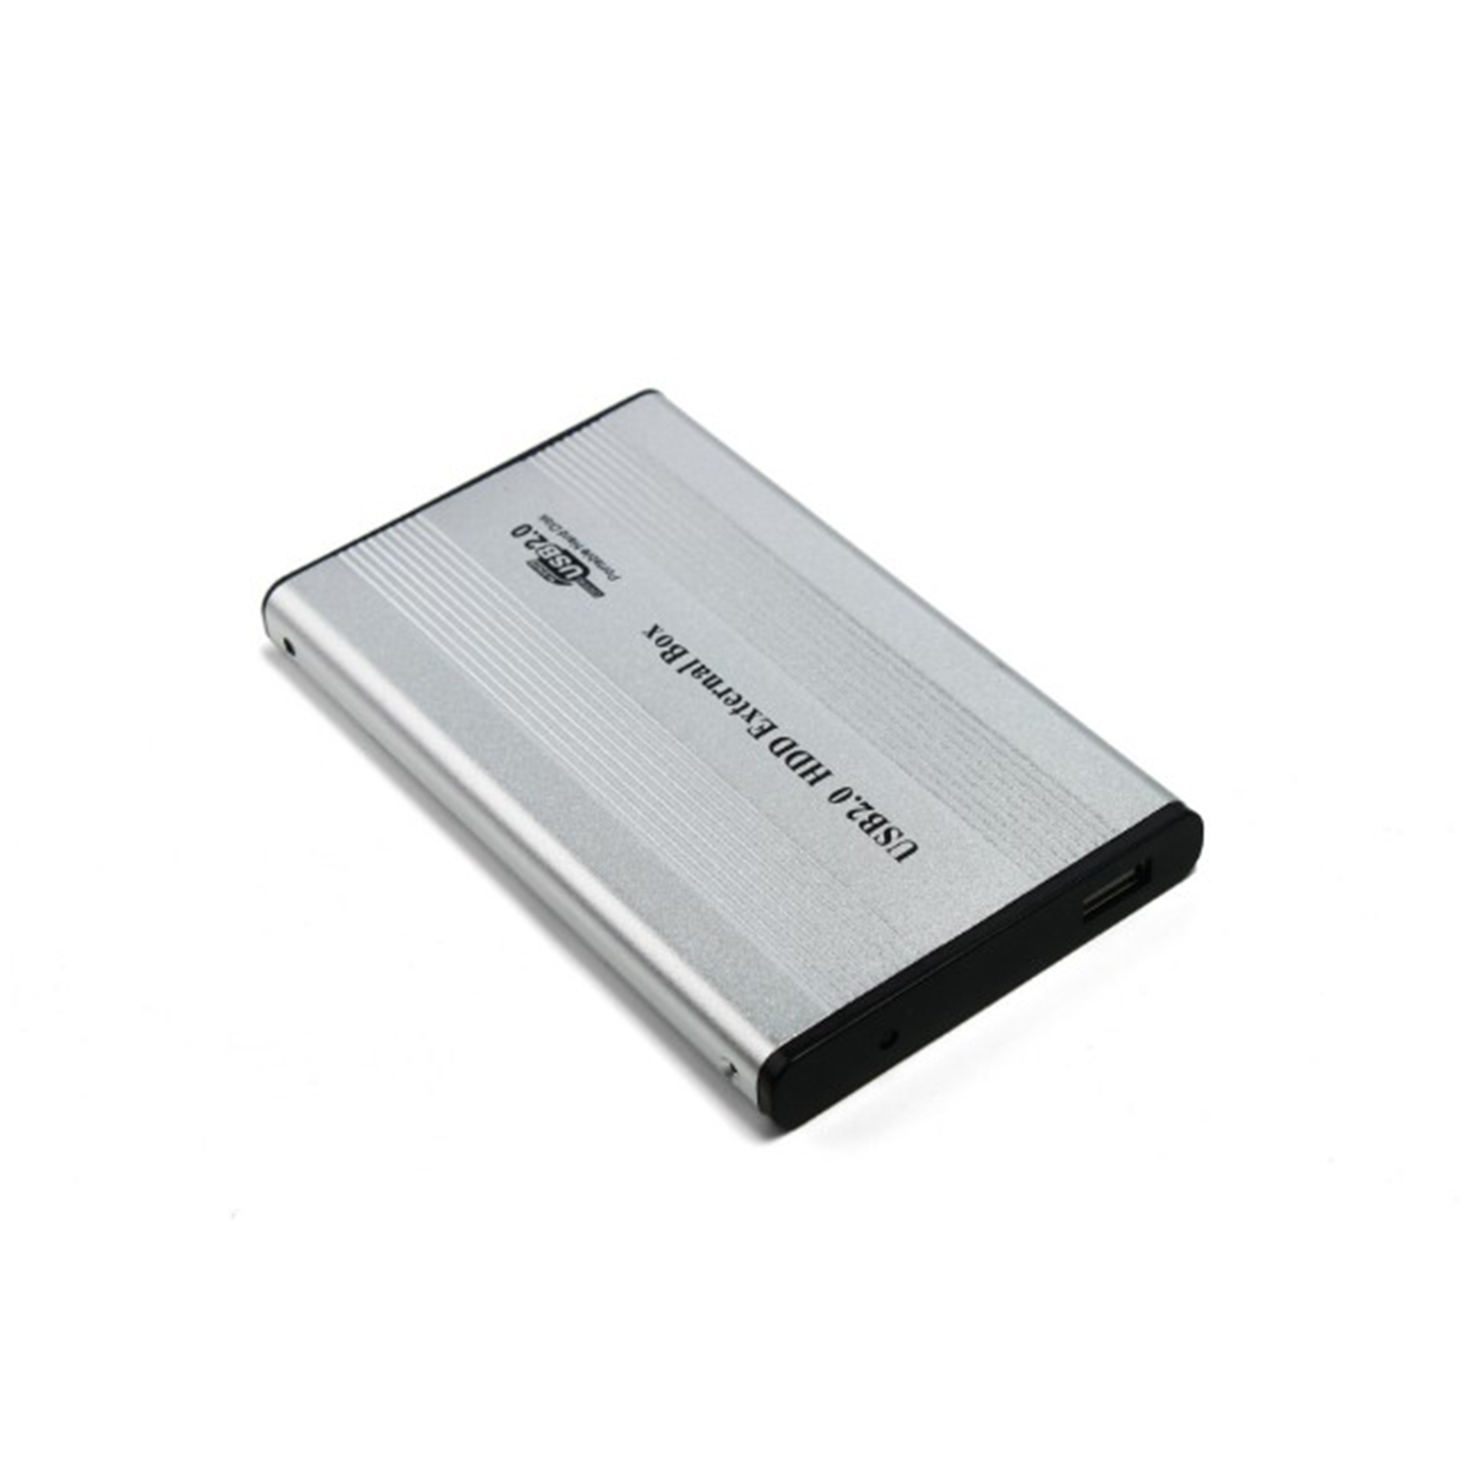 USB 2.0 Notebook IDE Port Hard Drive Disk Enclosure Case External 2.5 Inch HDD Box Caddy Aluminum Alloy For Laptop Computer PC